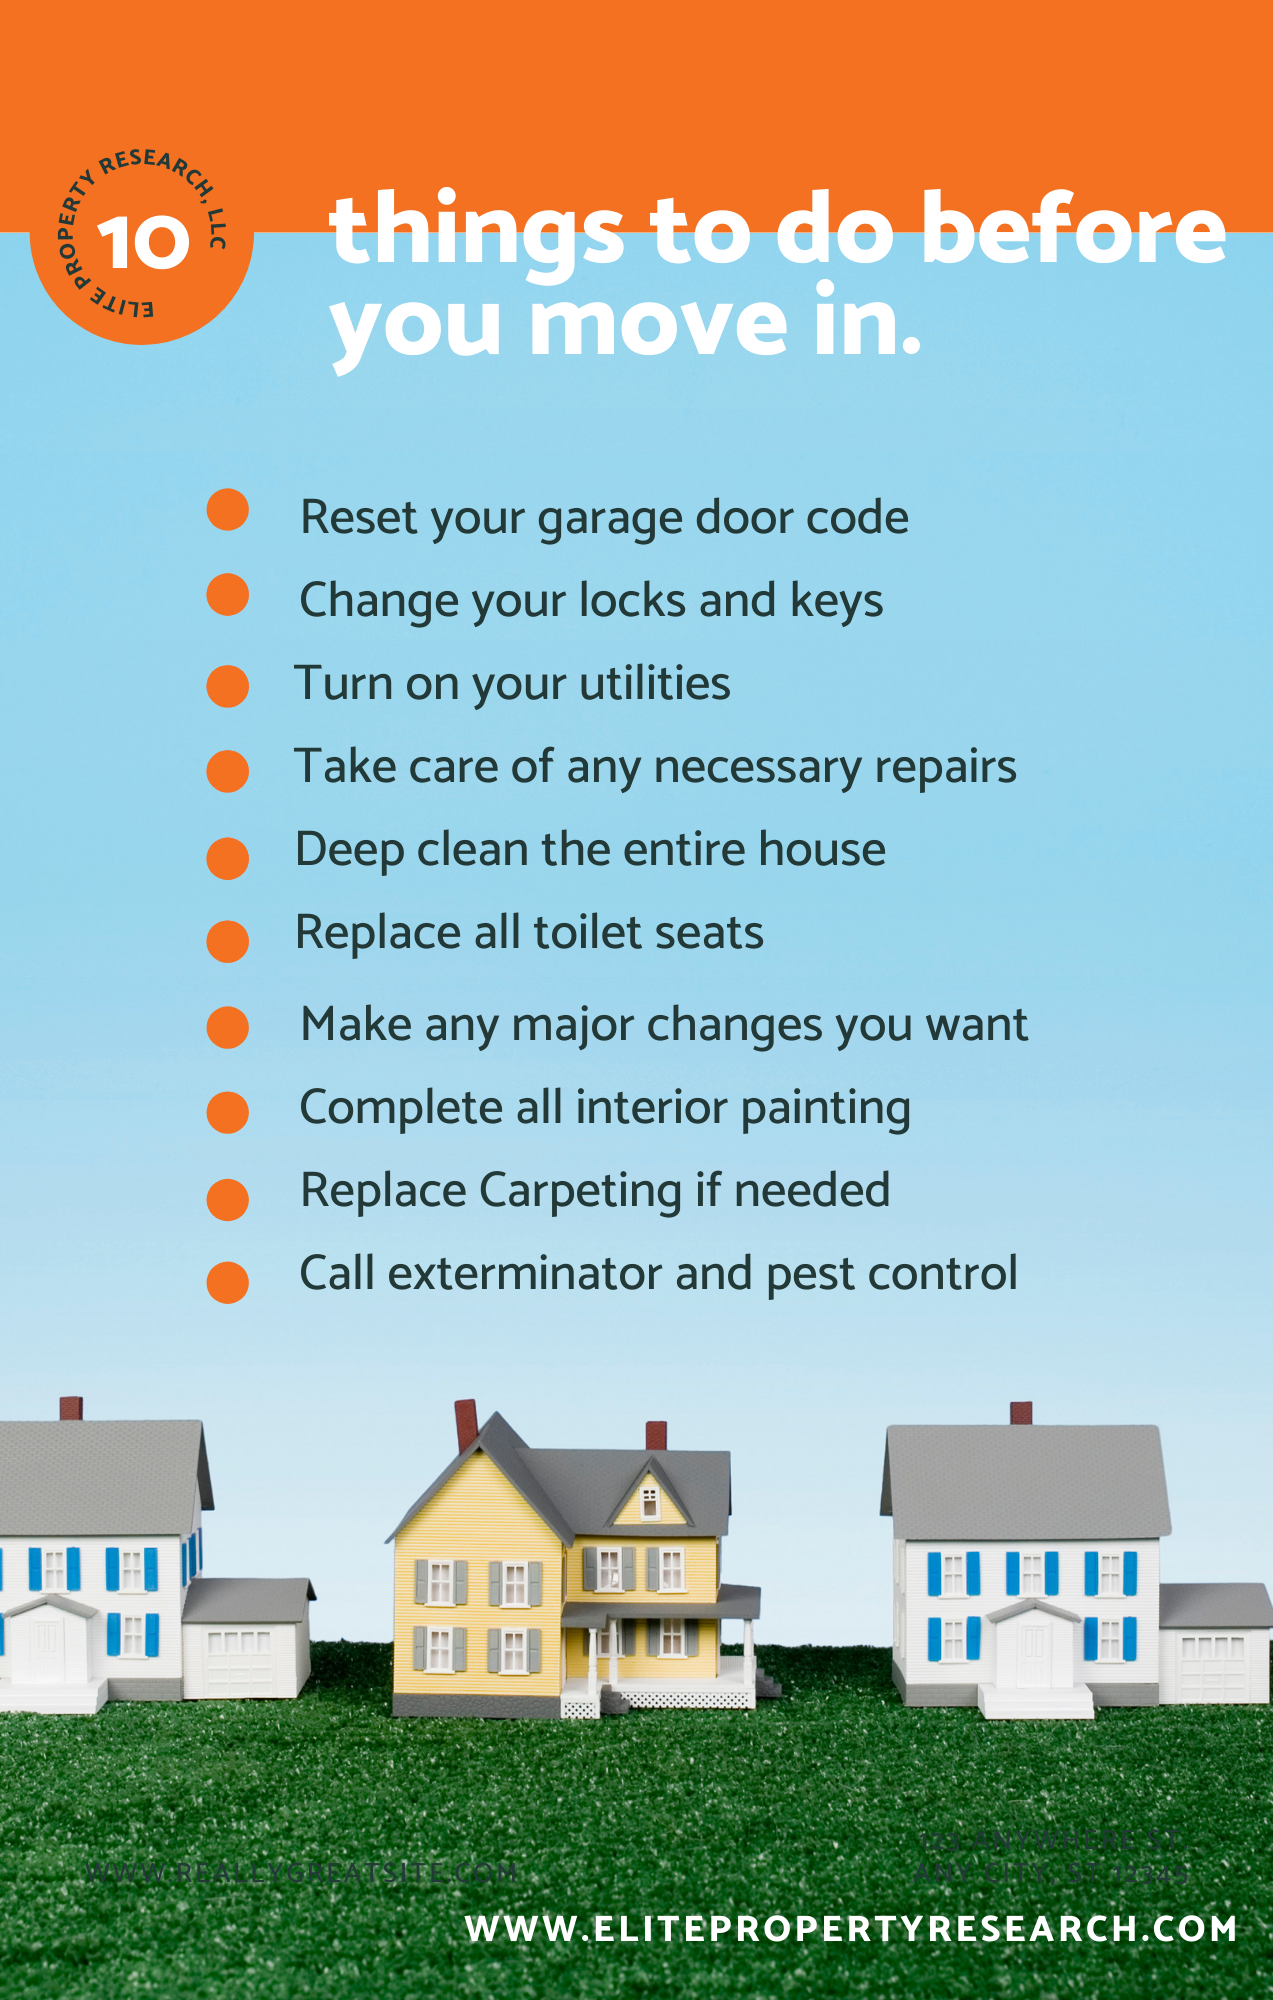 10 things to do before you move in